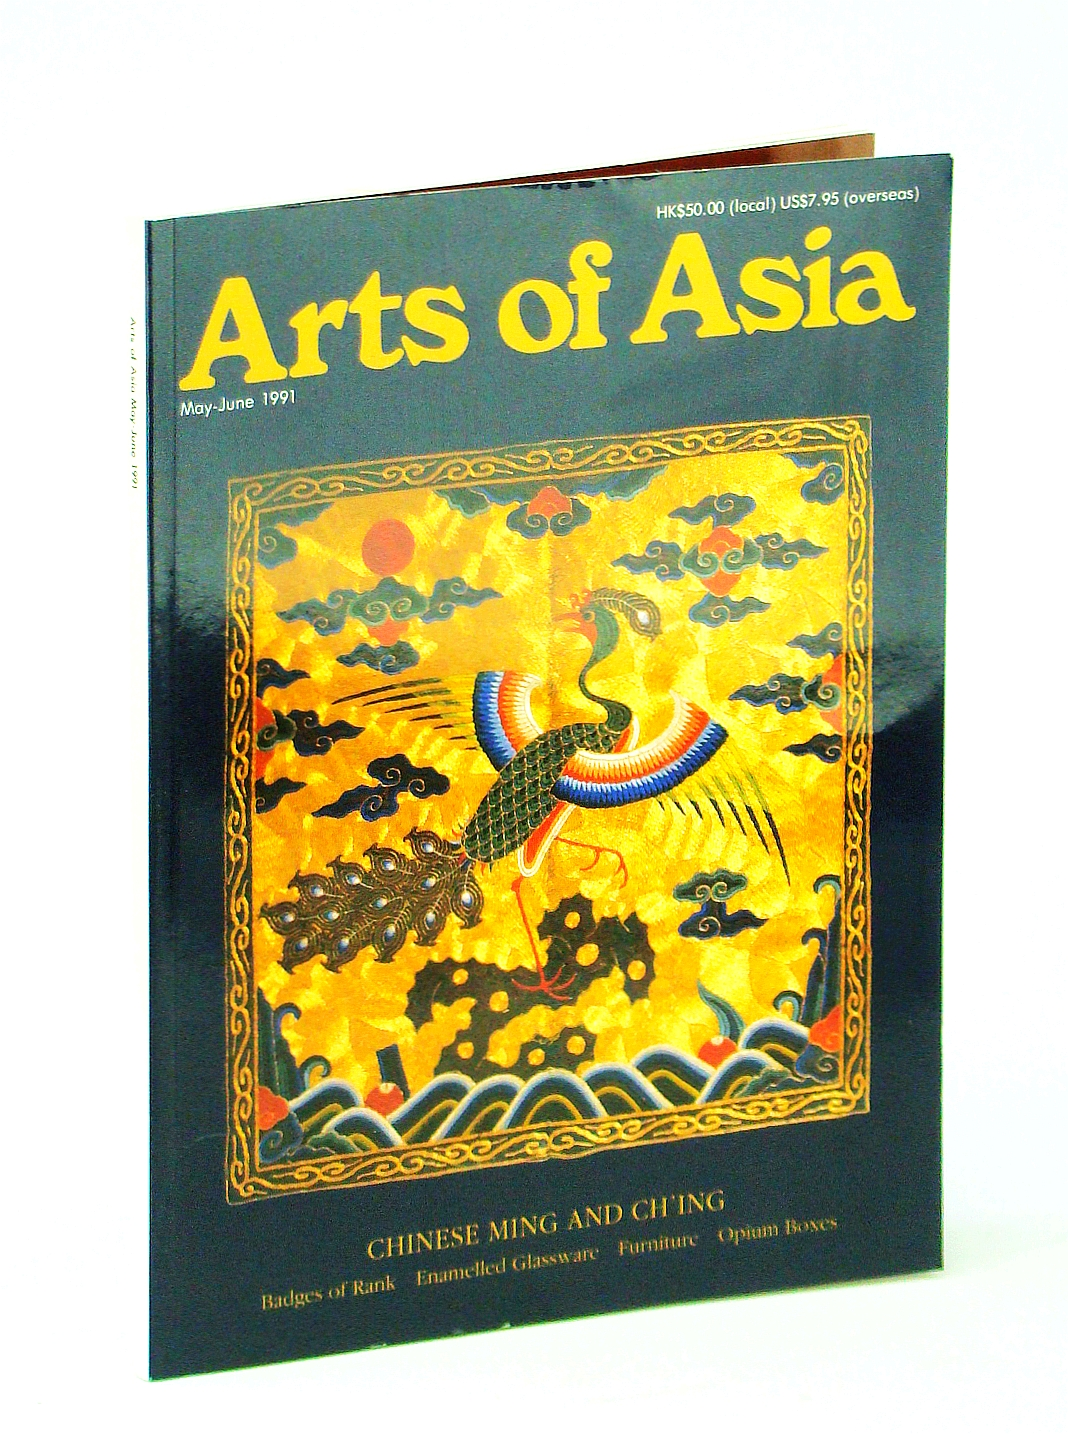 Image for Arts of Asia Magazine, Volume 21, Number 3, May - June 1991: Chinese Ming and Ch'ing